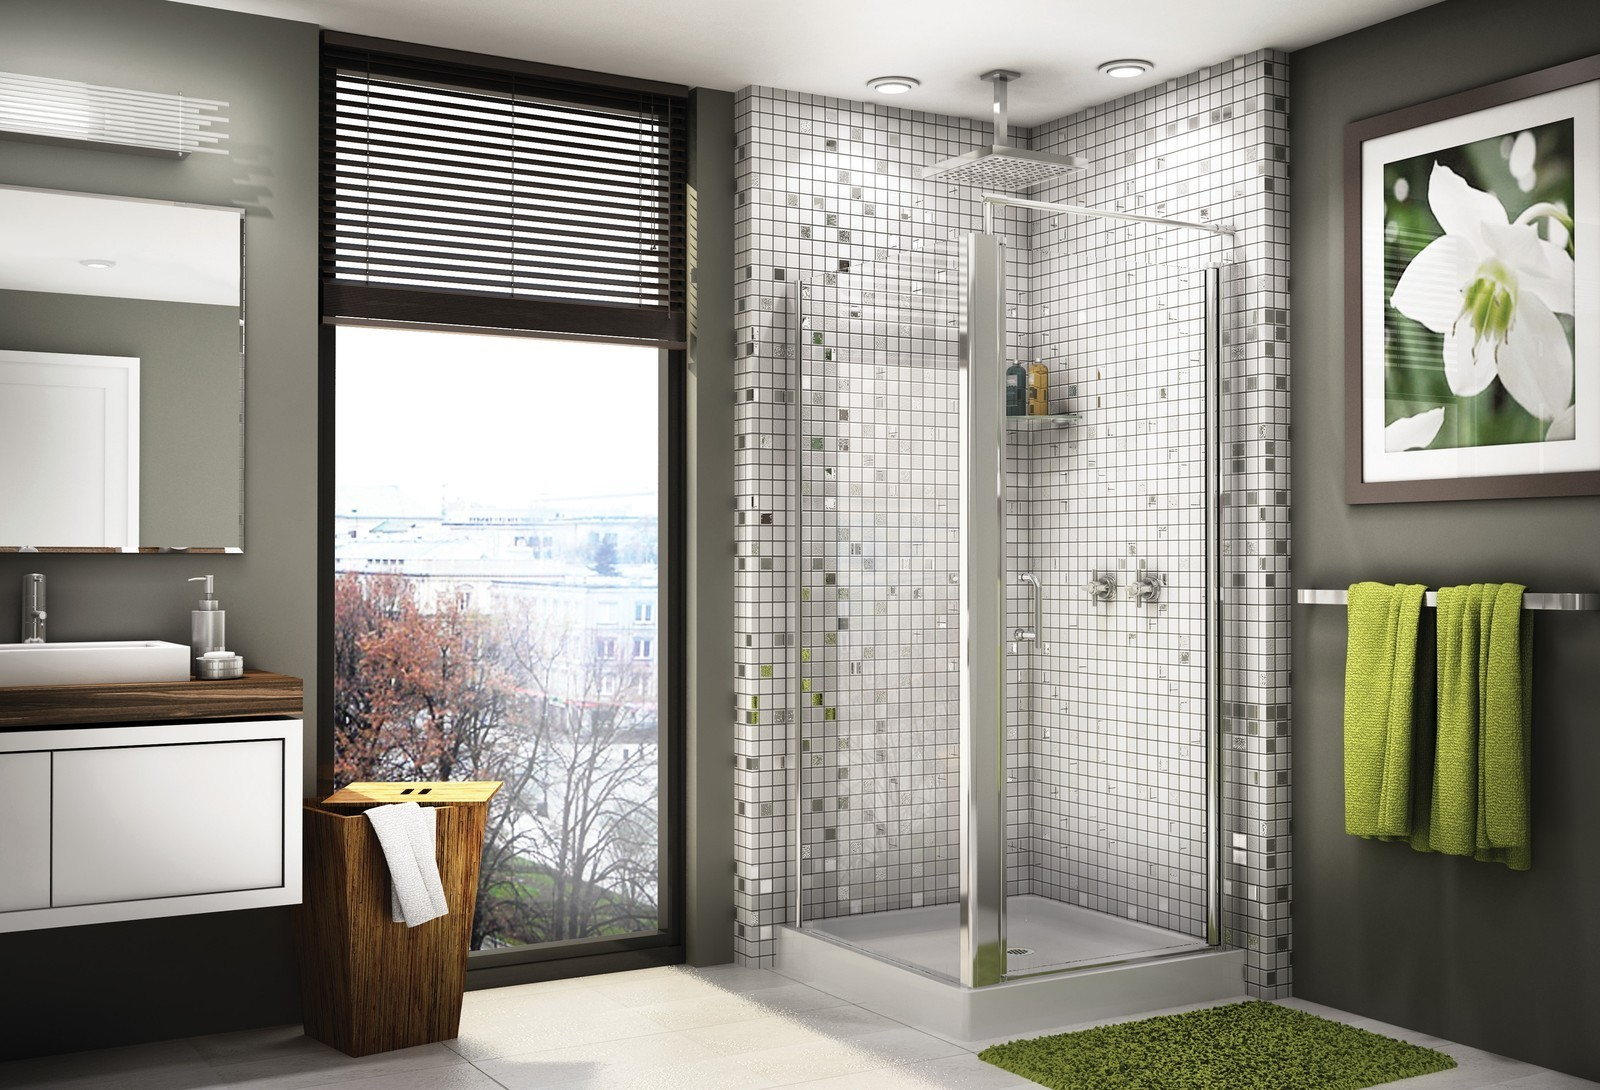 Mosaic Shower Wall Ideas: 30 Cool Pictures Of Tiled Showers With Glass Doors Esign